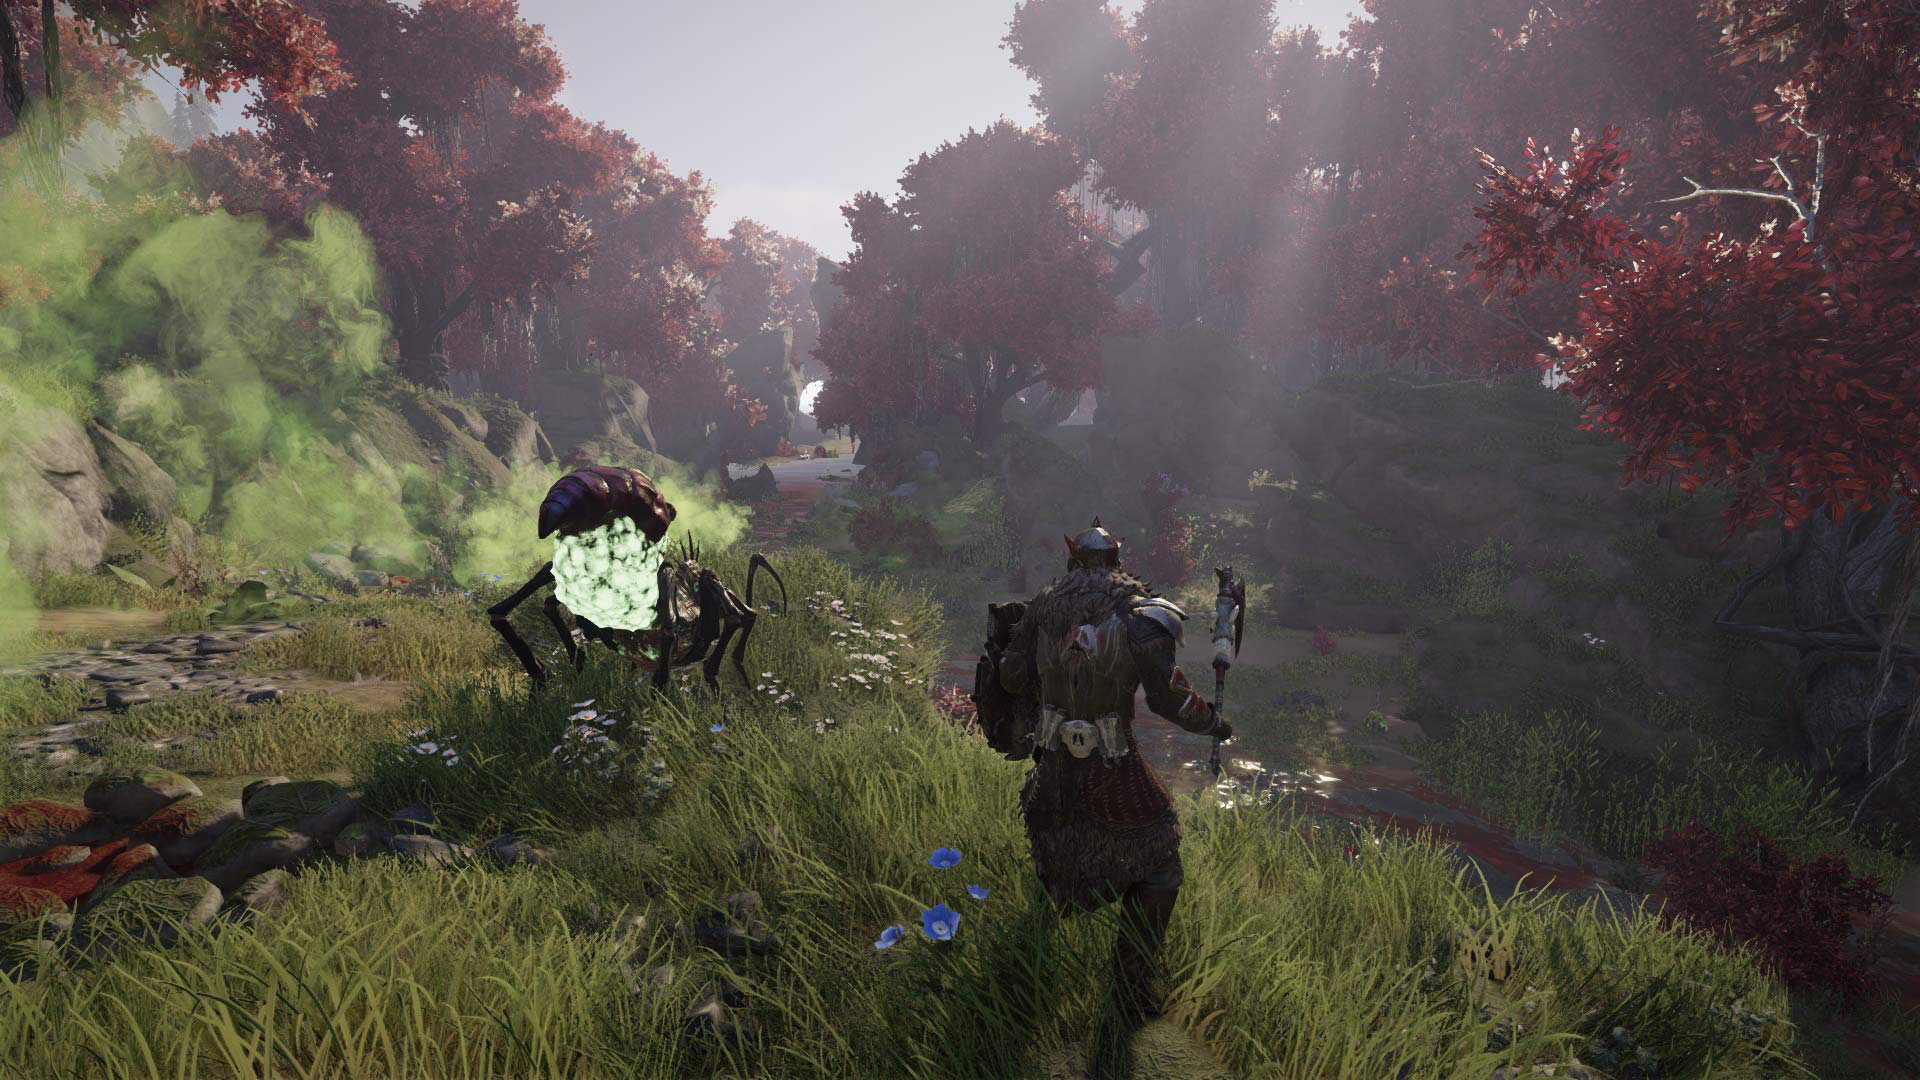 Latest ELEX Patch Adds 4K Support on PS4 Pro, New Easier Difficulty